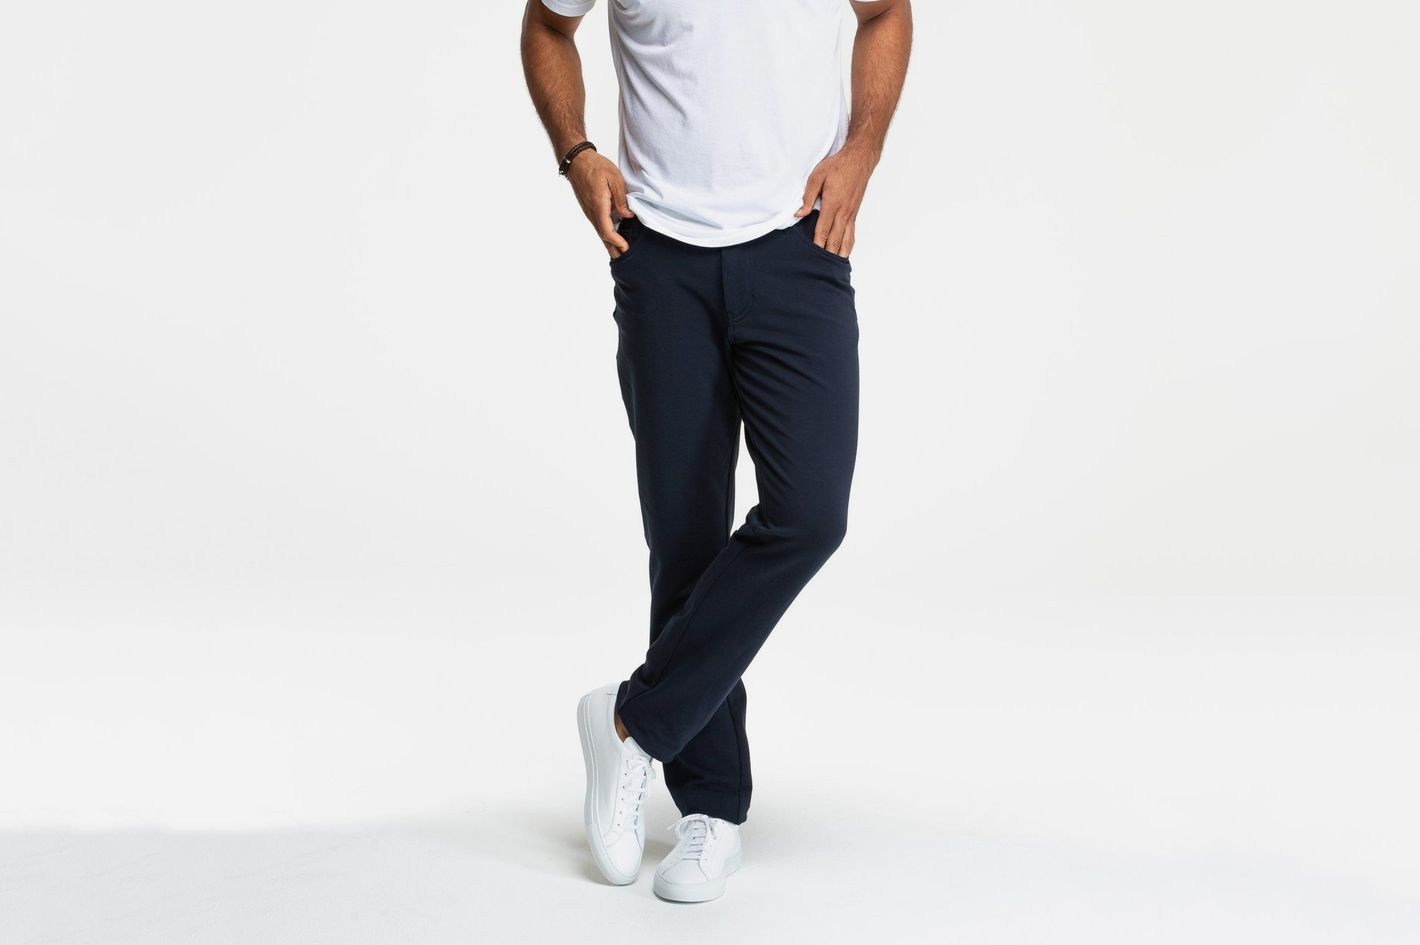 Swet Tailor All-In Pants